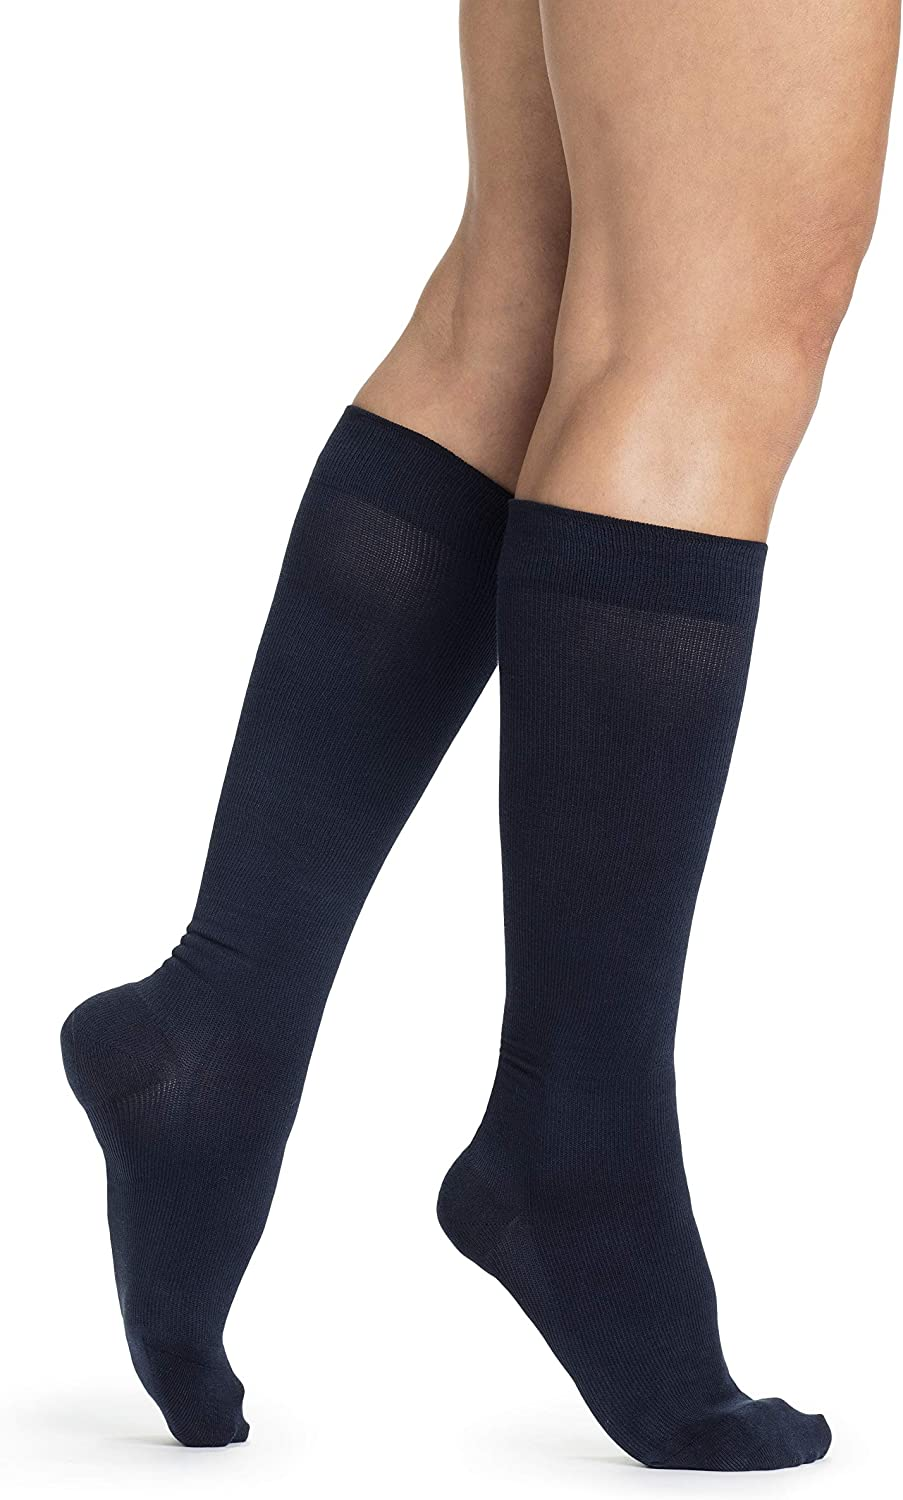 SIGVARIS Easy-to-use Women's SEA Island Cotton Knee-High Al sold out. Soc 151 Compression